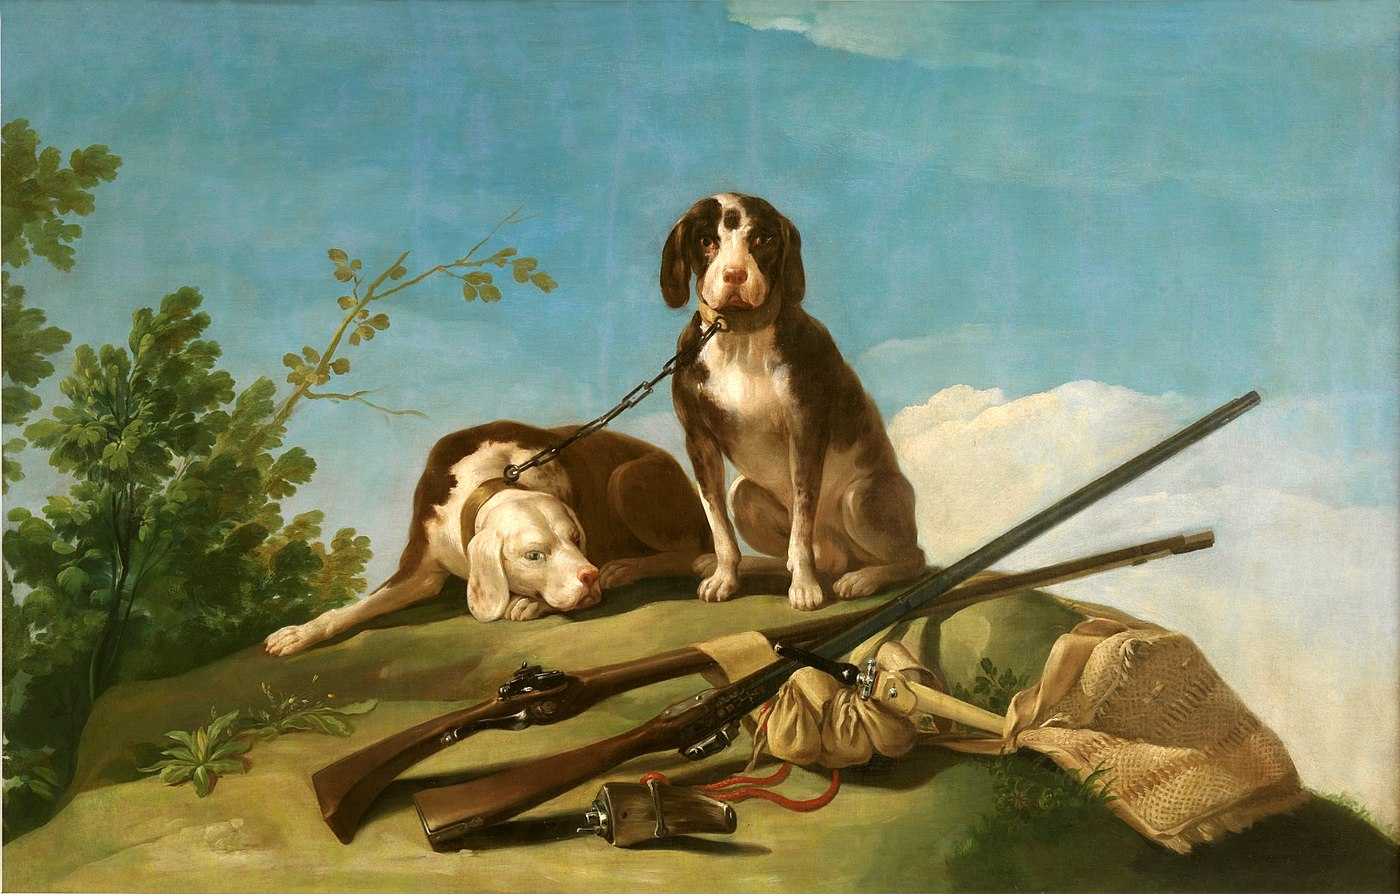 Dogs and hunting gear